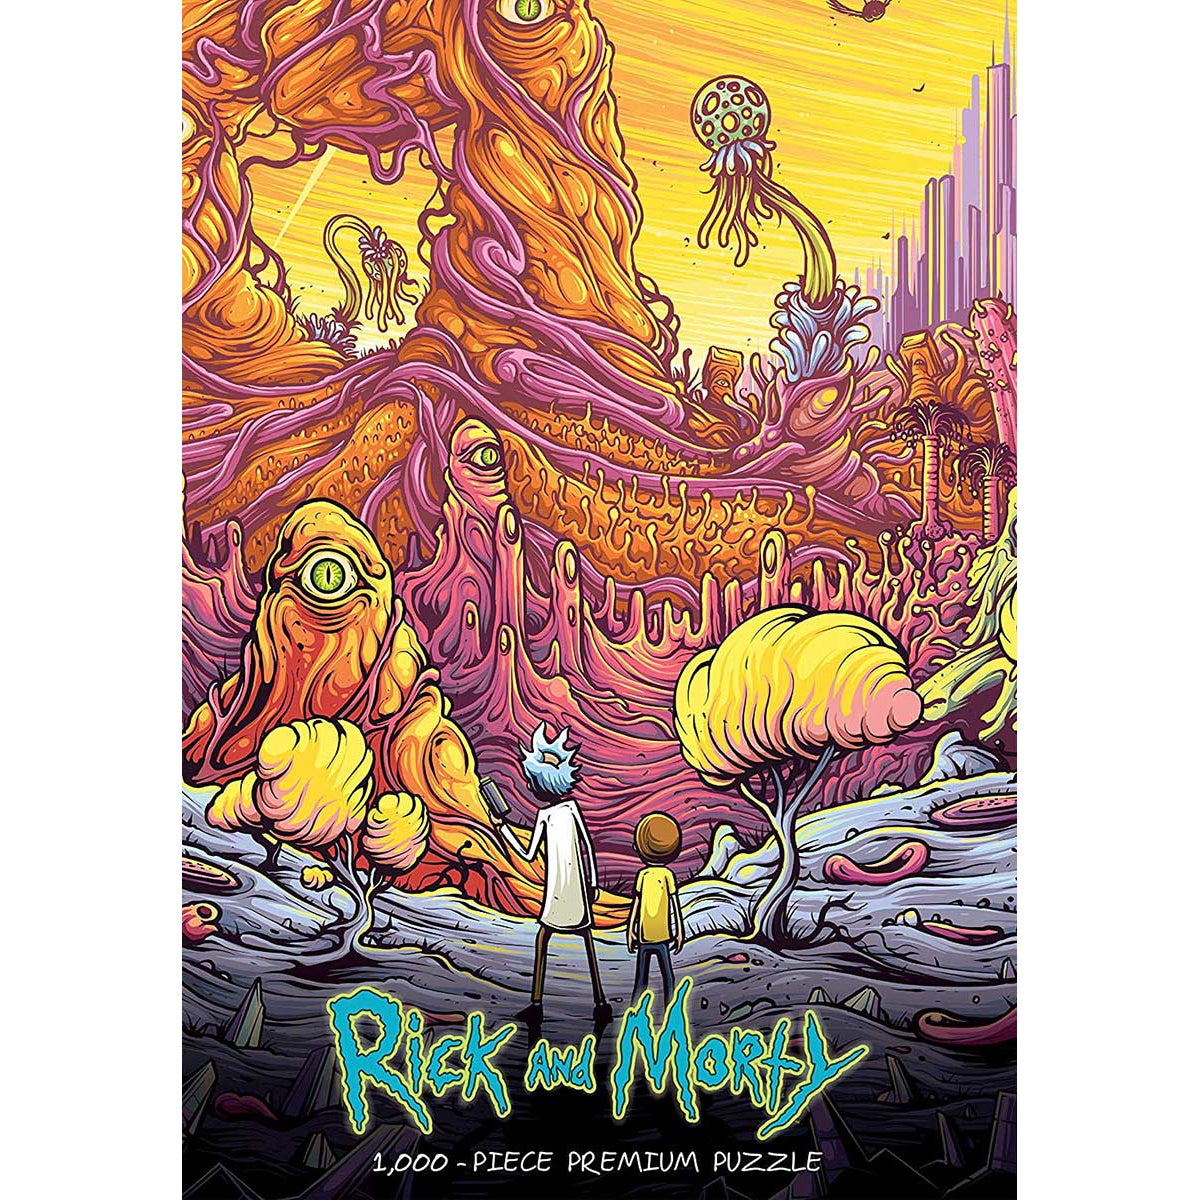 Puzzle: Rick and Morty (1000 pc) | Black Knight Games